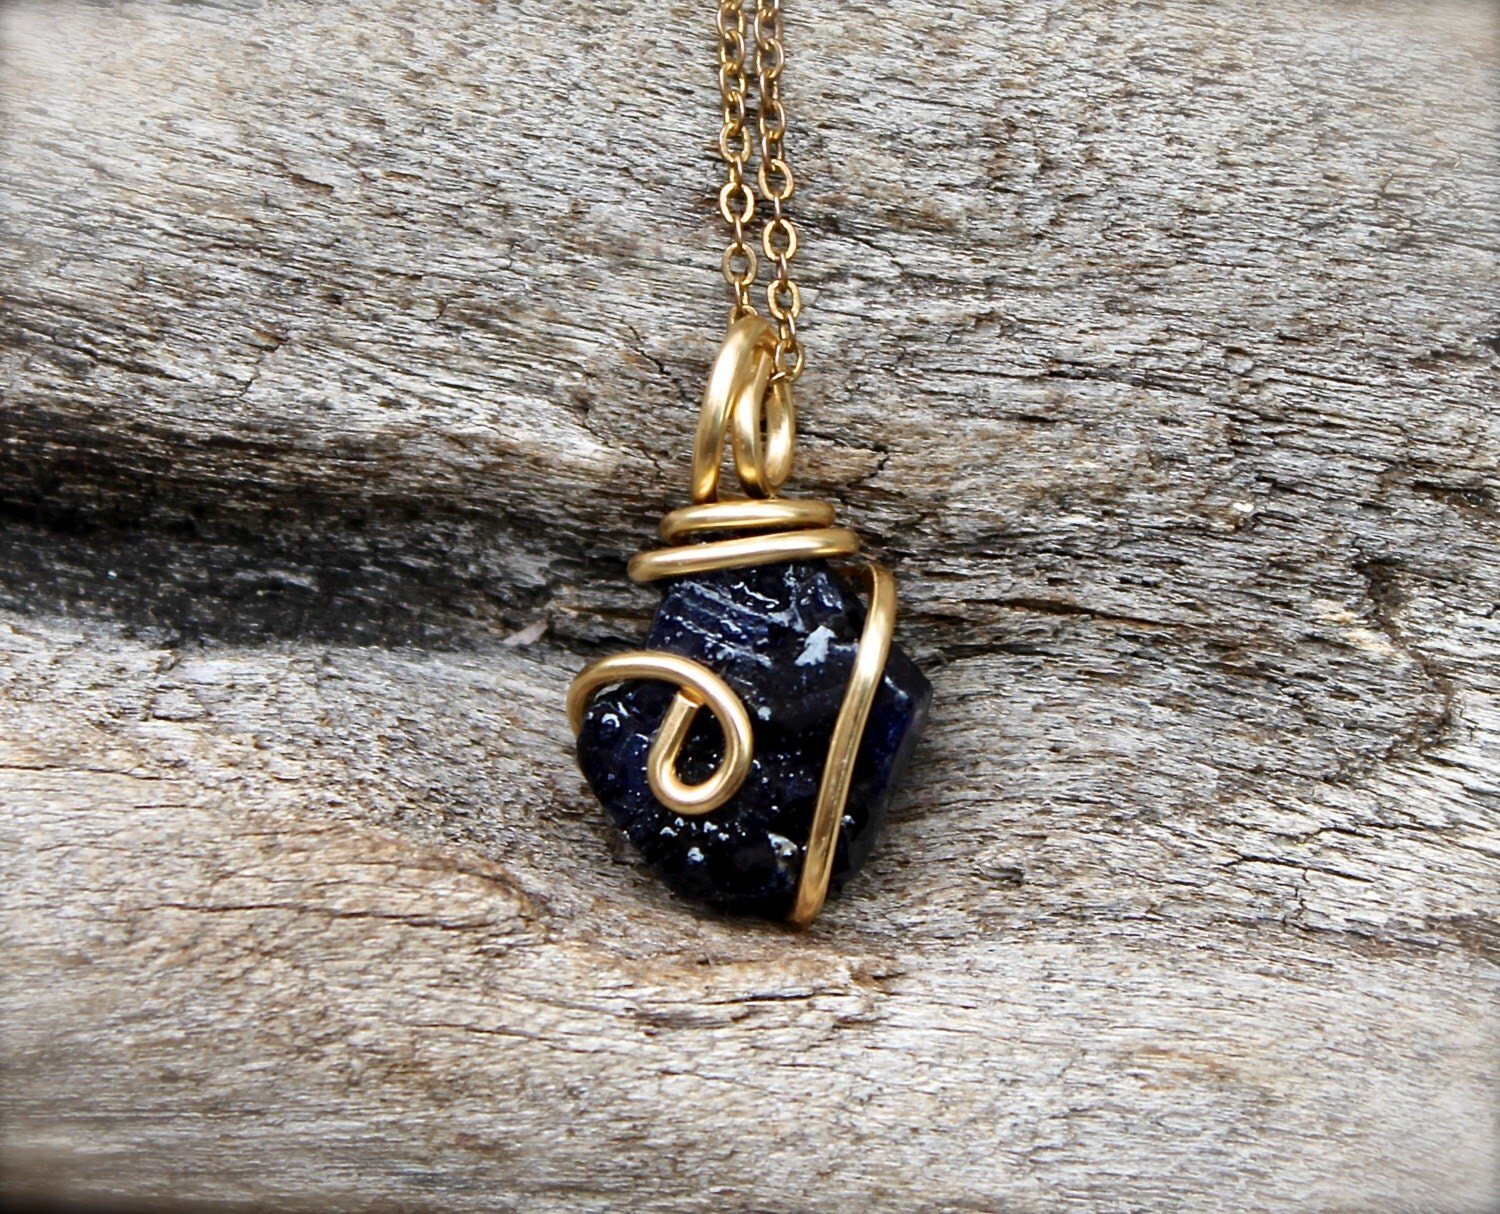 Chandeliers & Pendant LightsUnpolished Sapphire Necklace